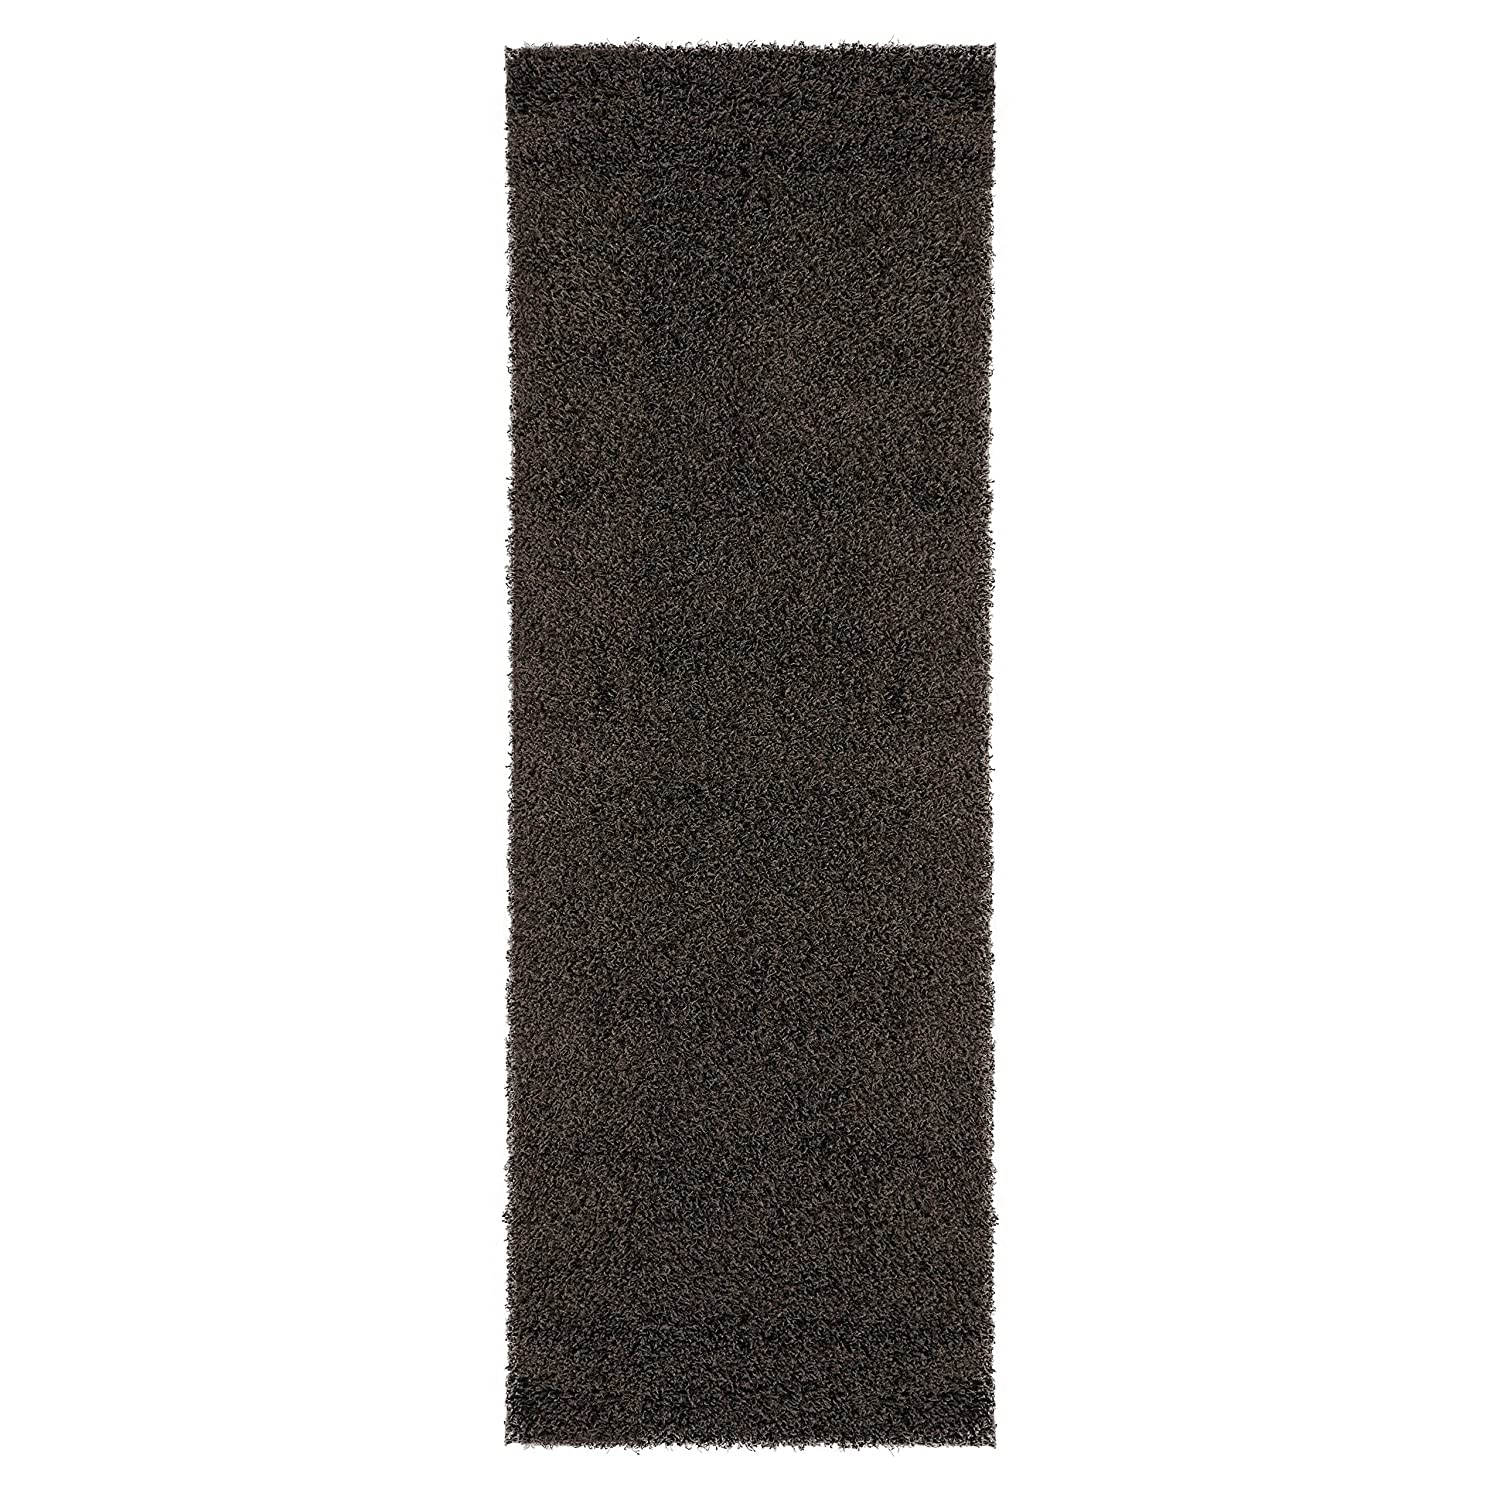 Ottomanson Soft Cozy Color Solid Shag Runner Rug Contemporary Hallway and Kitchen Shag Runner Rug Beige 27L X 80W